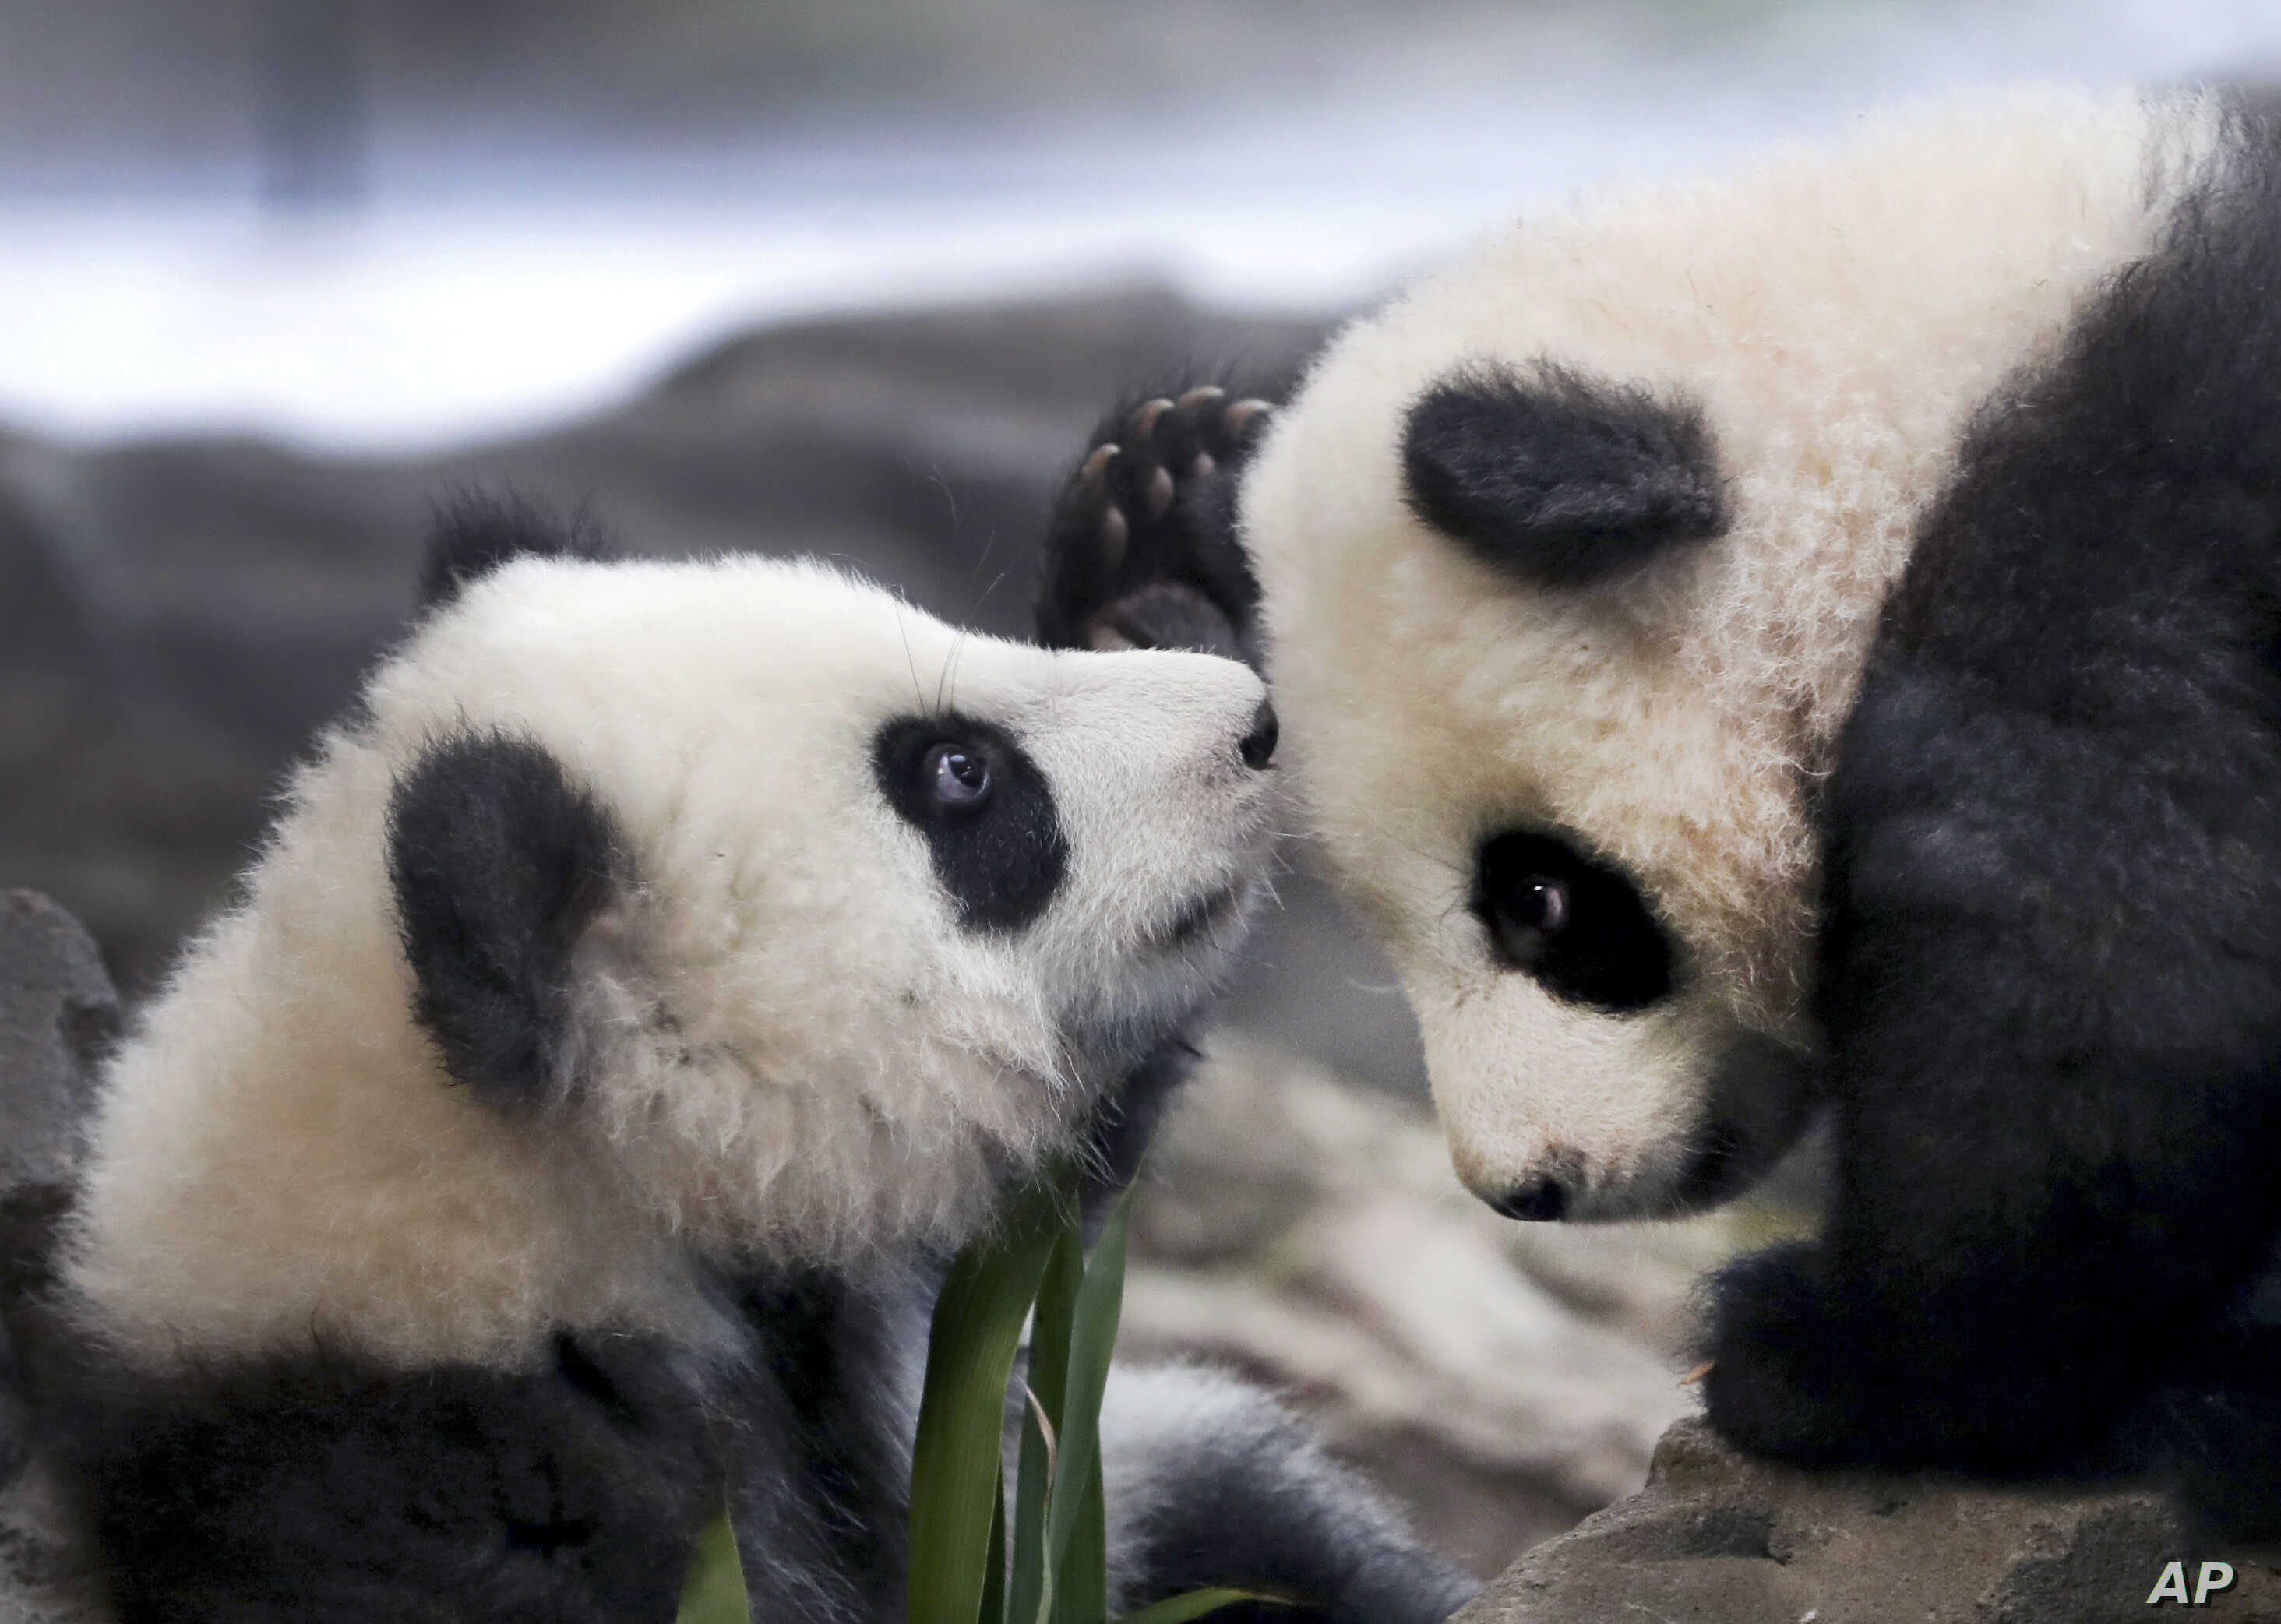 In this picture taken through a window, the young panda twins 'Meng Yuan' and 'Meng Xiang' explore their enclosure at the Berlin Zoo in Berlin, Germany.